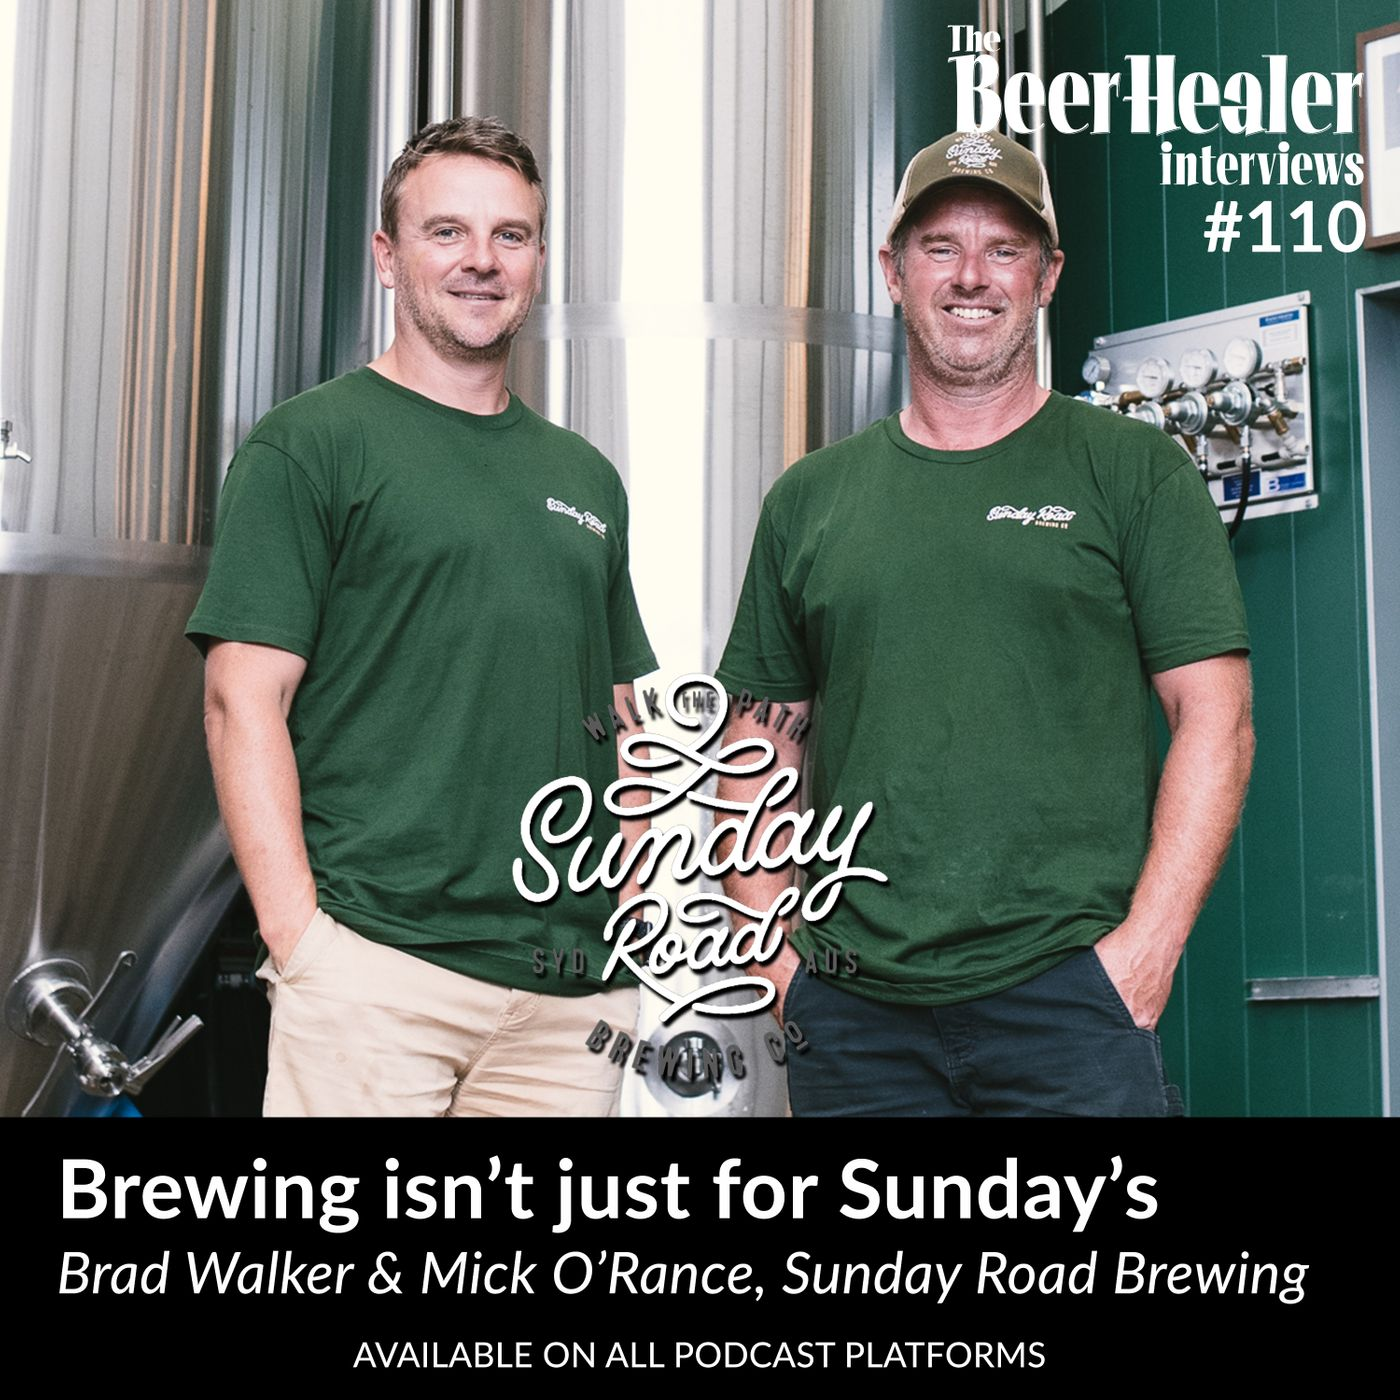 Ep. 111 - Brewing isn't just for Sundays. With Sunday Road Brewing's Brad Foster & Mick O'Rance.